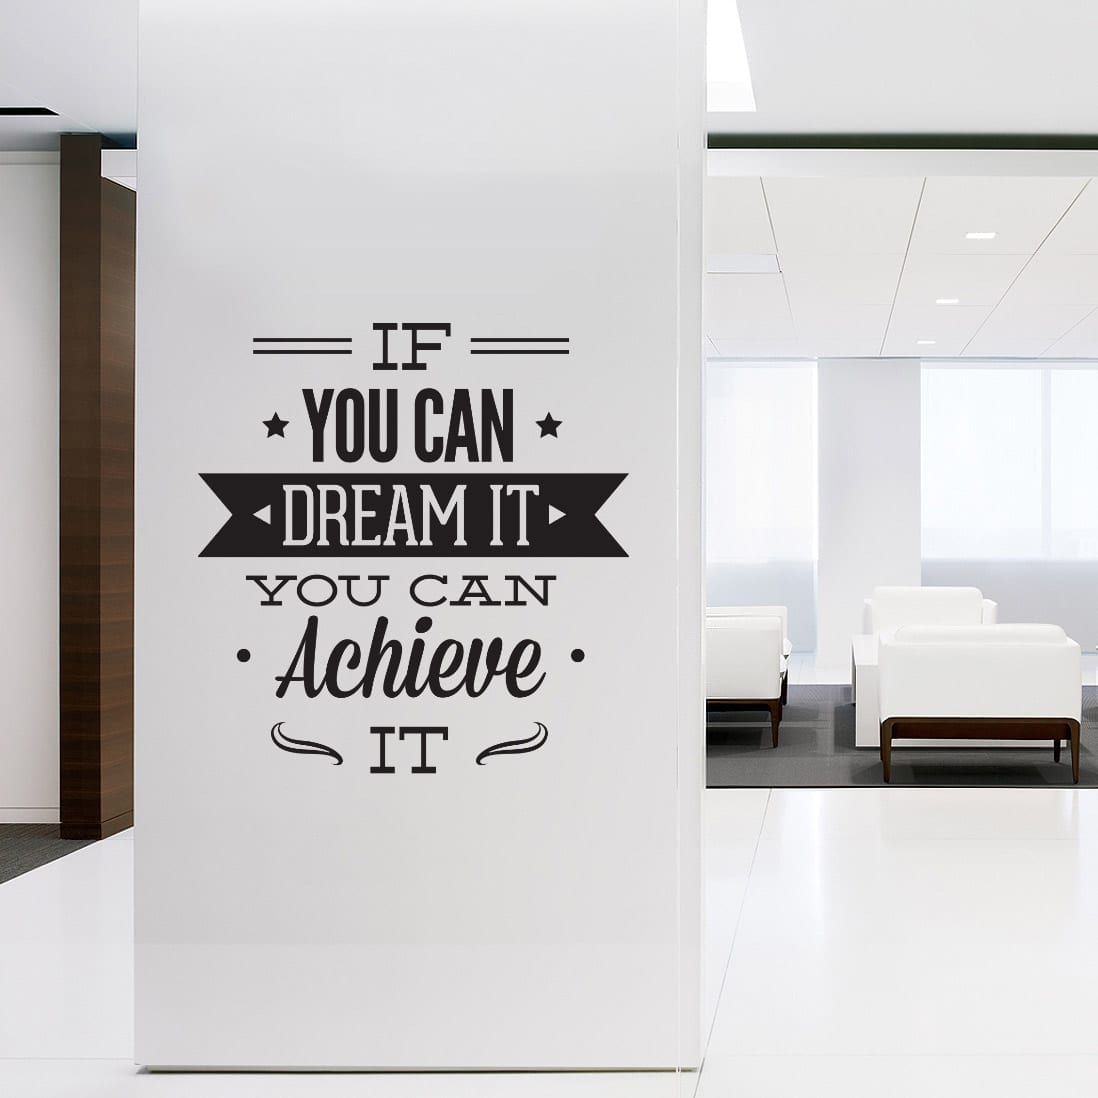 Dream It Achieve It Em Vinil Decorativo Casadart Pt